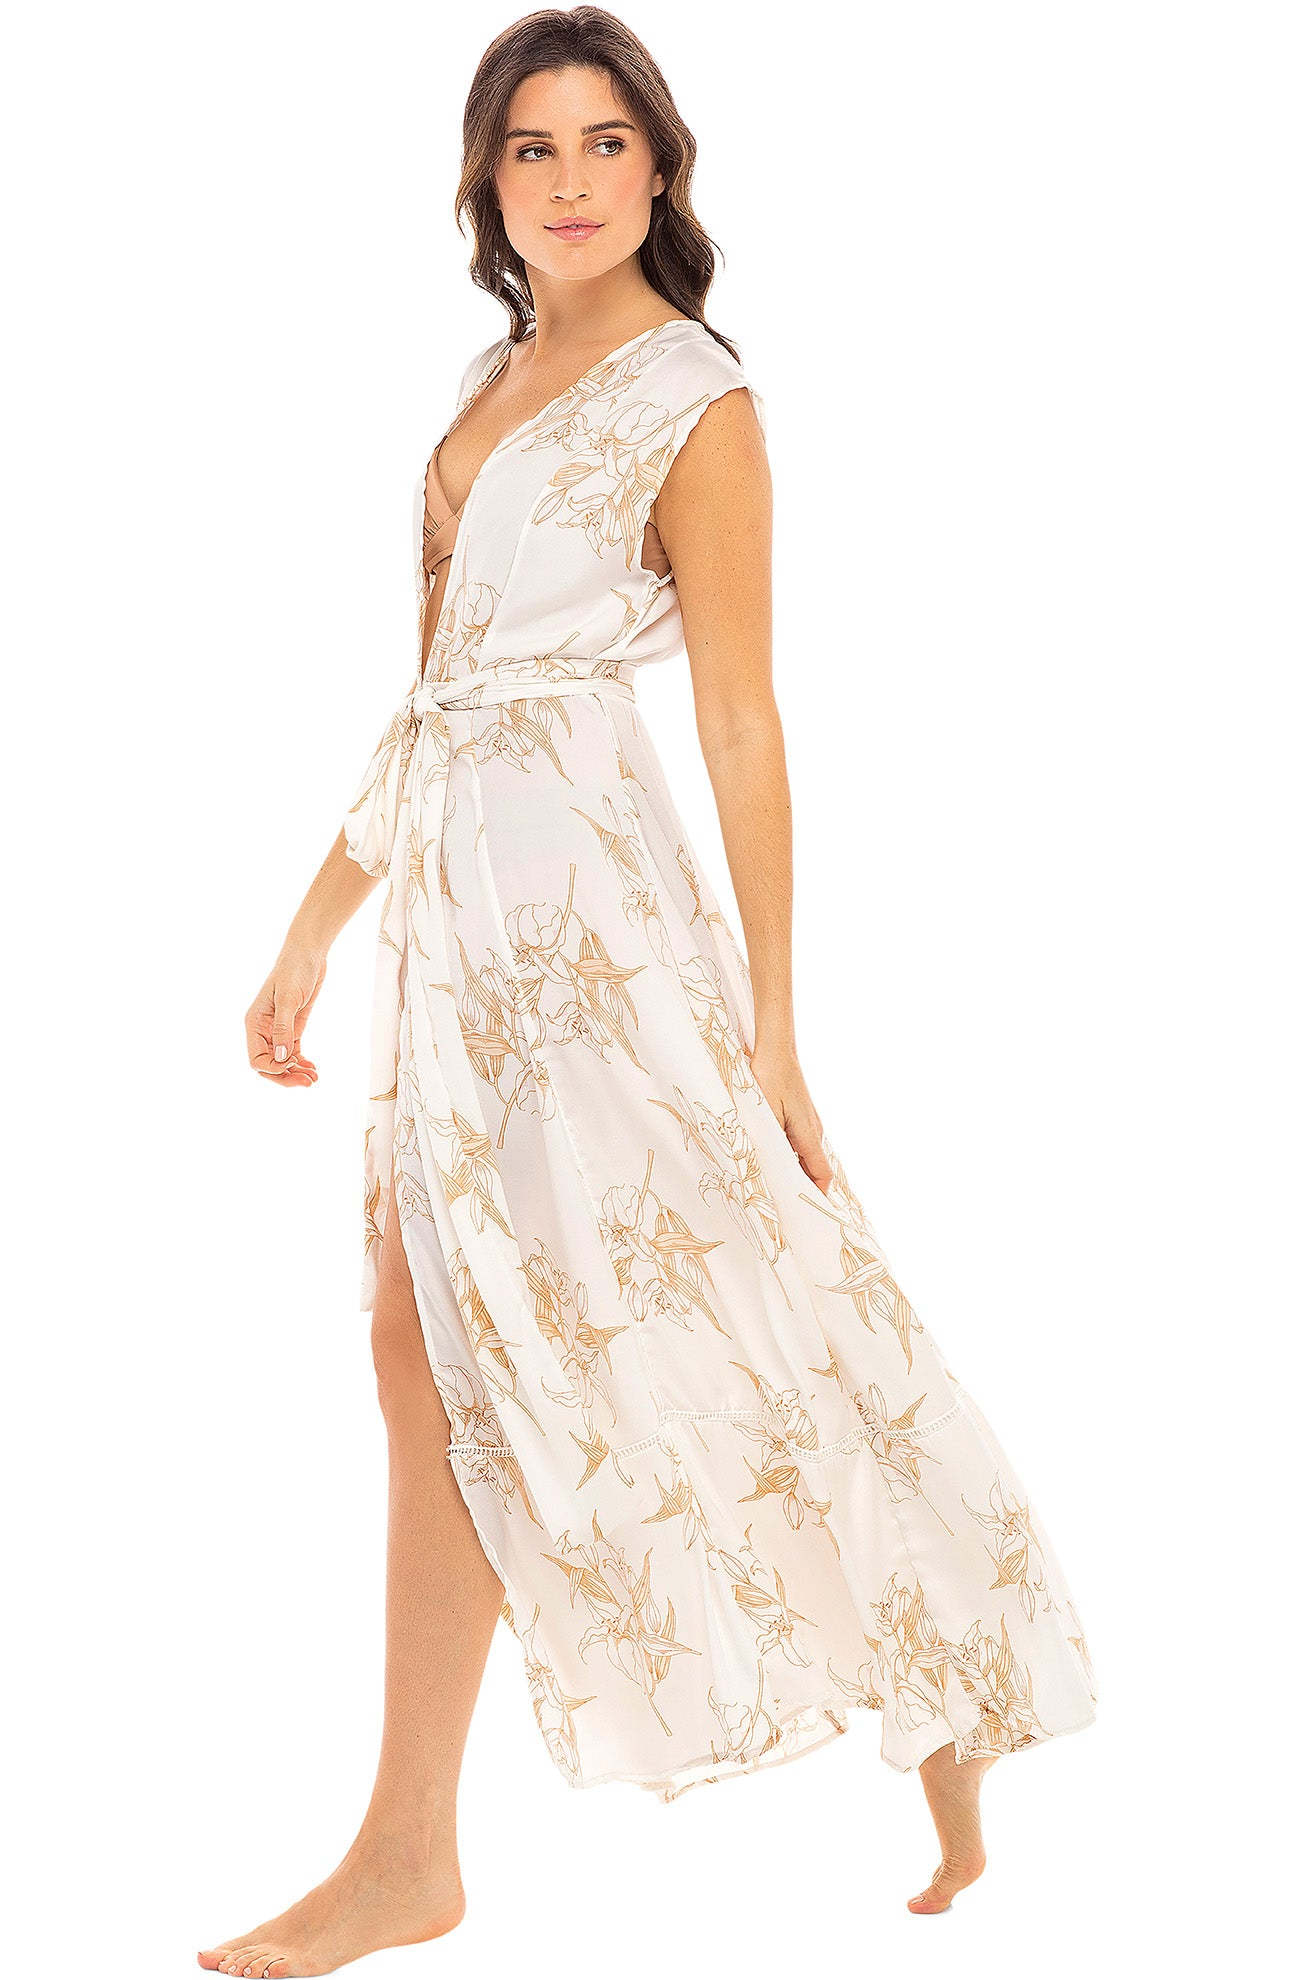 Audrey Sleeveless Duster - White Lily